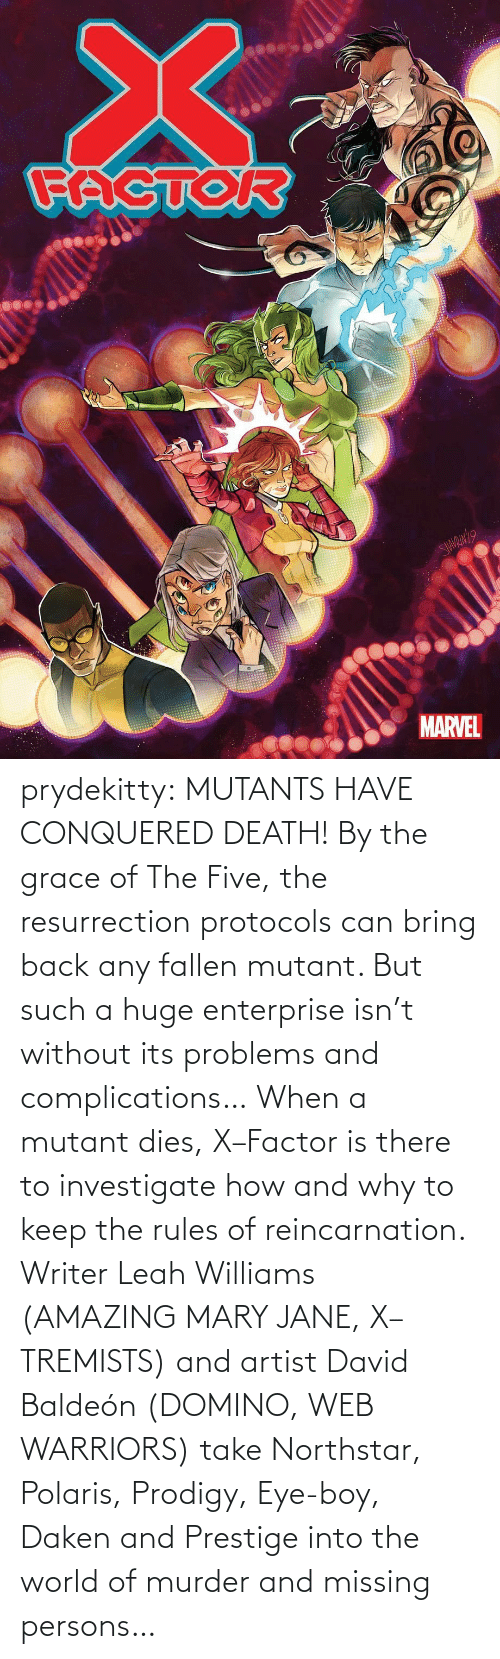 Dies: prydekitty:  MUTANTS HAVE CONQUERED DEATH! By the grace of The Five, the resurrection protocols can bring back any fallen mutant. But such a huge enterprise isn't without its problems and complications… When a mutant dies, X–Factor is there to investigate how and why to keep the rules of reincarnation. Writer Leah Williams (AMAZING MARY JANE, X–TREMISTS) and artist David Baldeón (DOMINO, WEB WARRIORS) take Northstar, Polaris, Prodigy, Eye-boy, Daken and Prestige into the world of murder and missing persons…